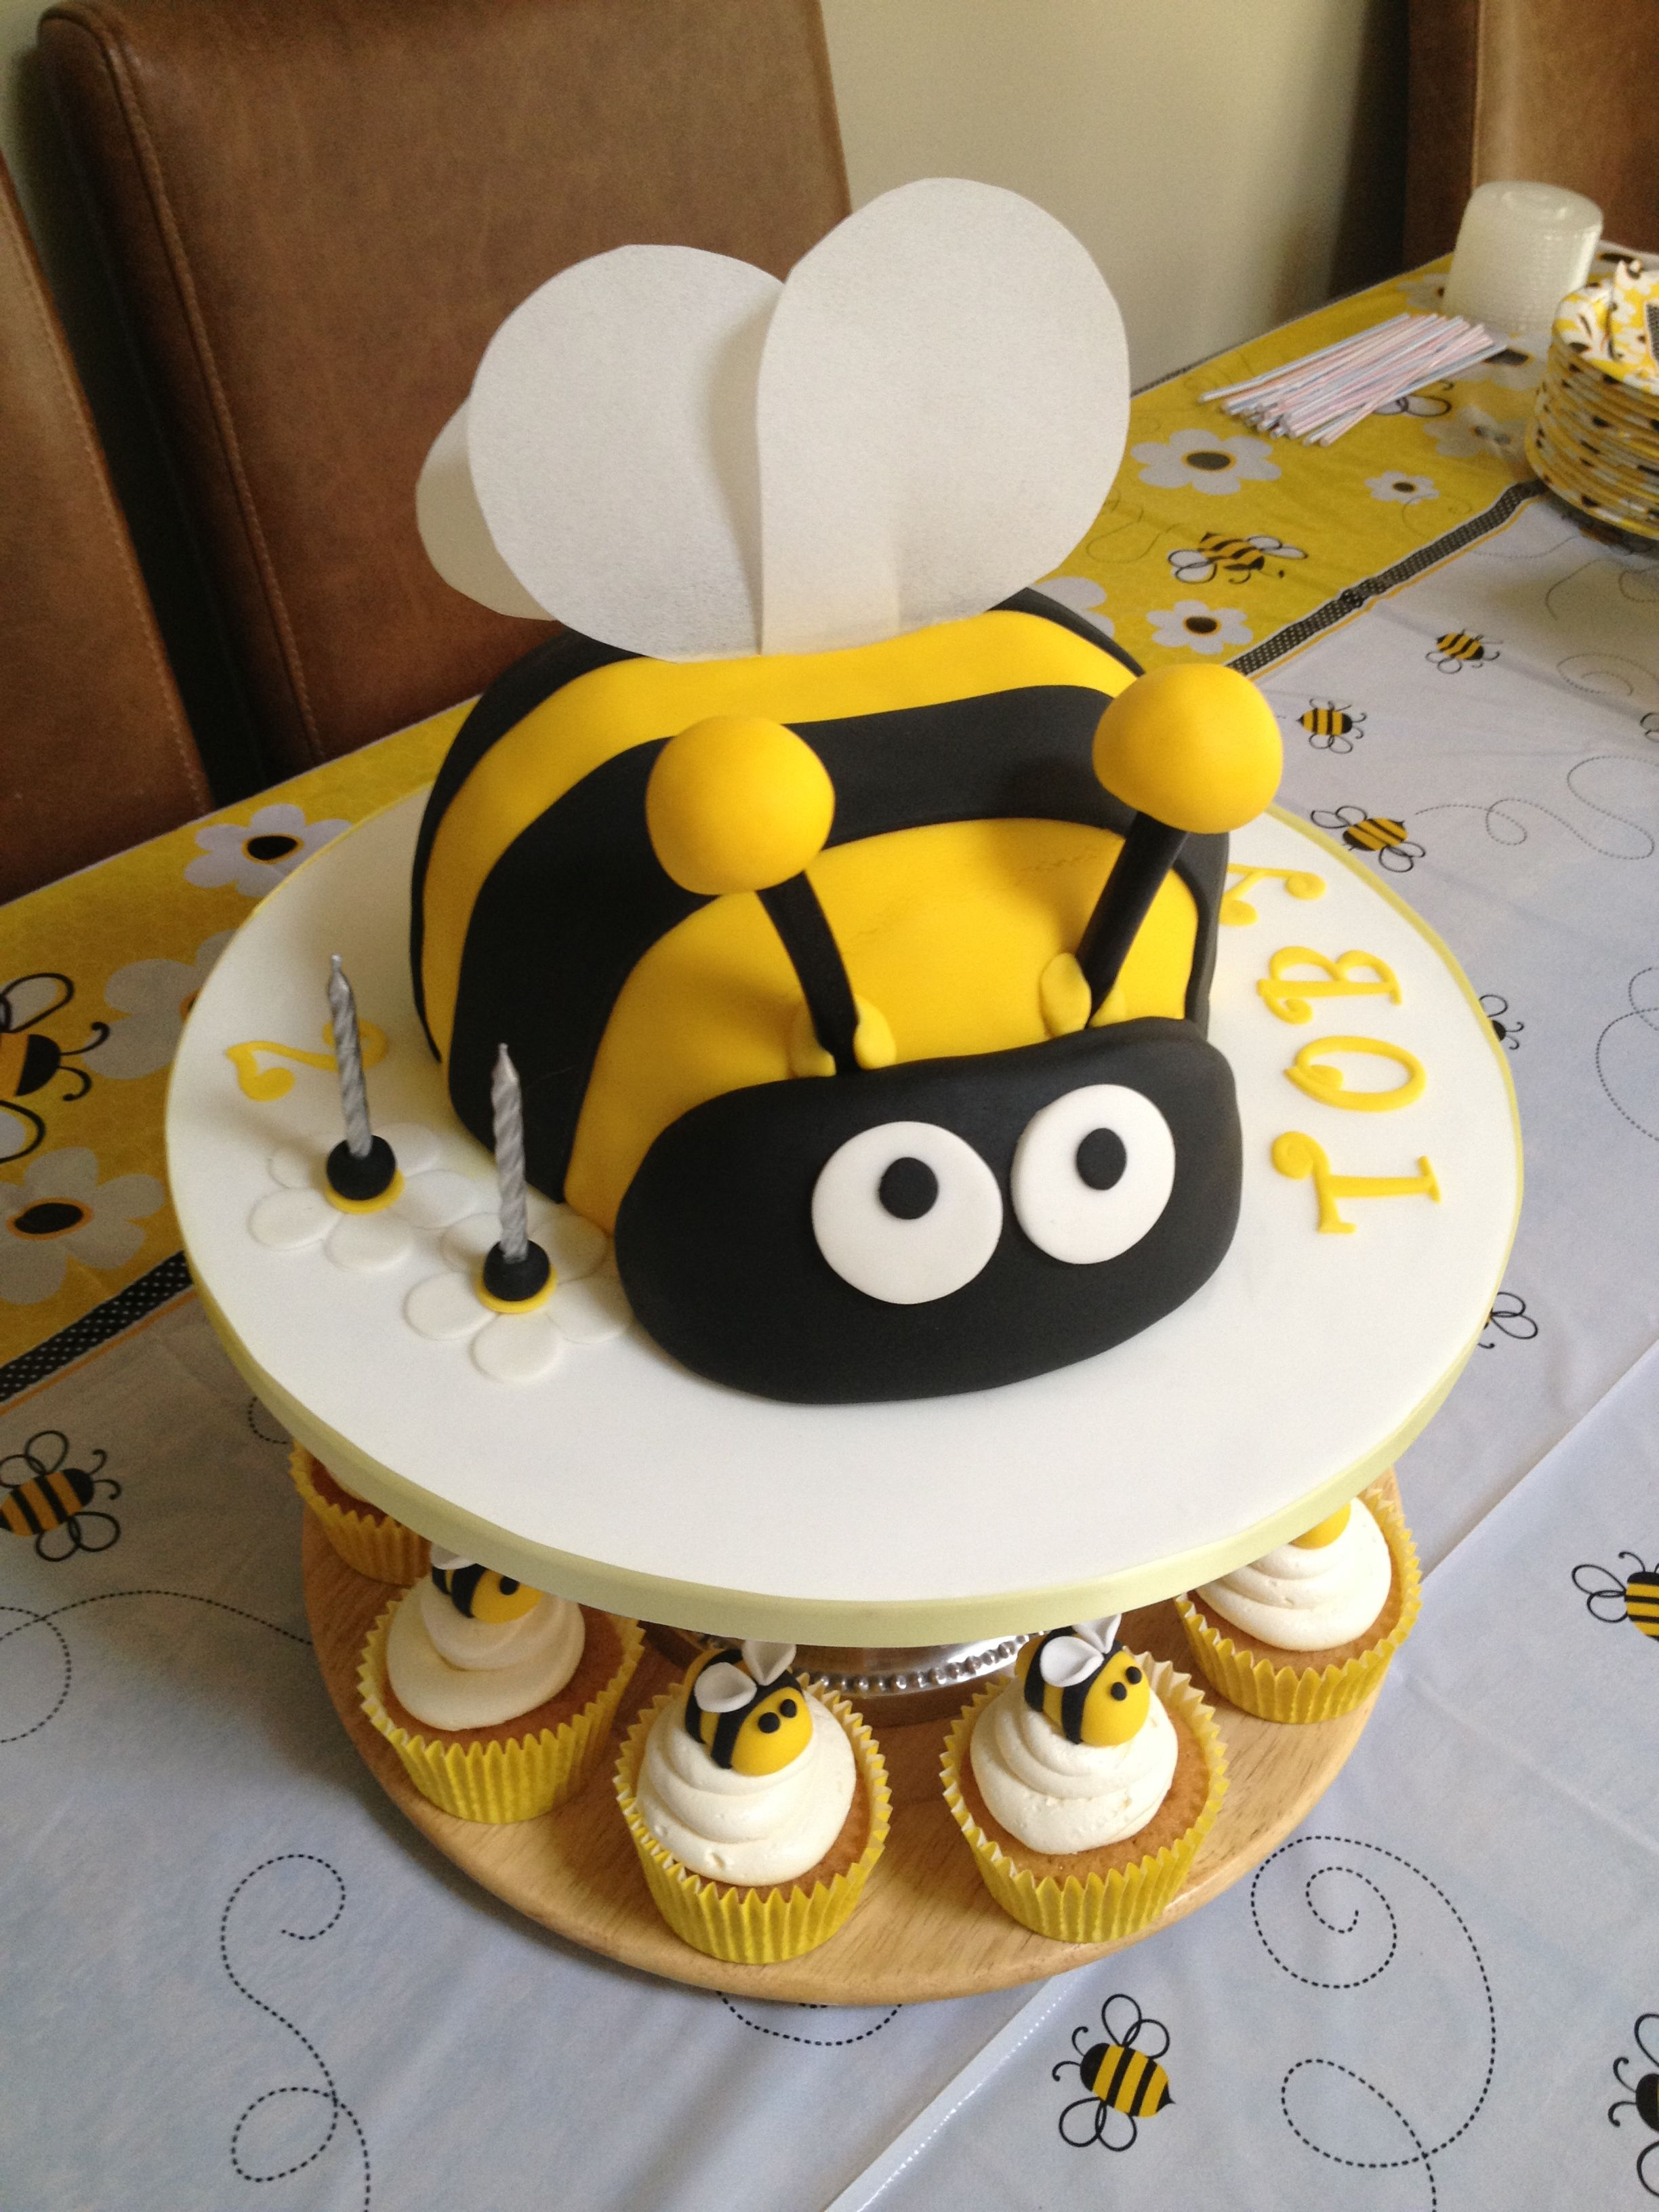 Bumble Bee Cake With Cupcake Hives And Bees Bee Birthday Cake